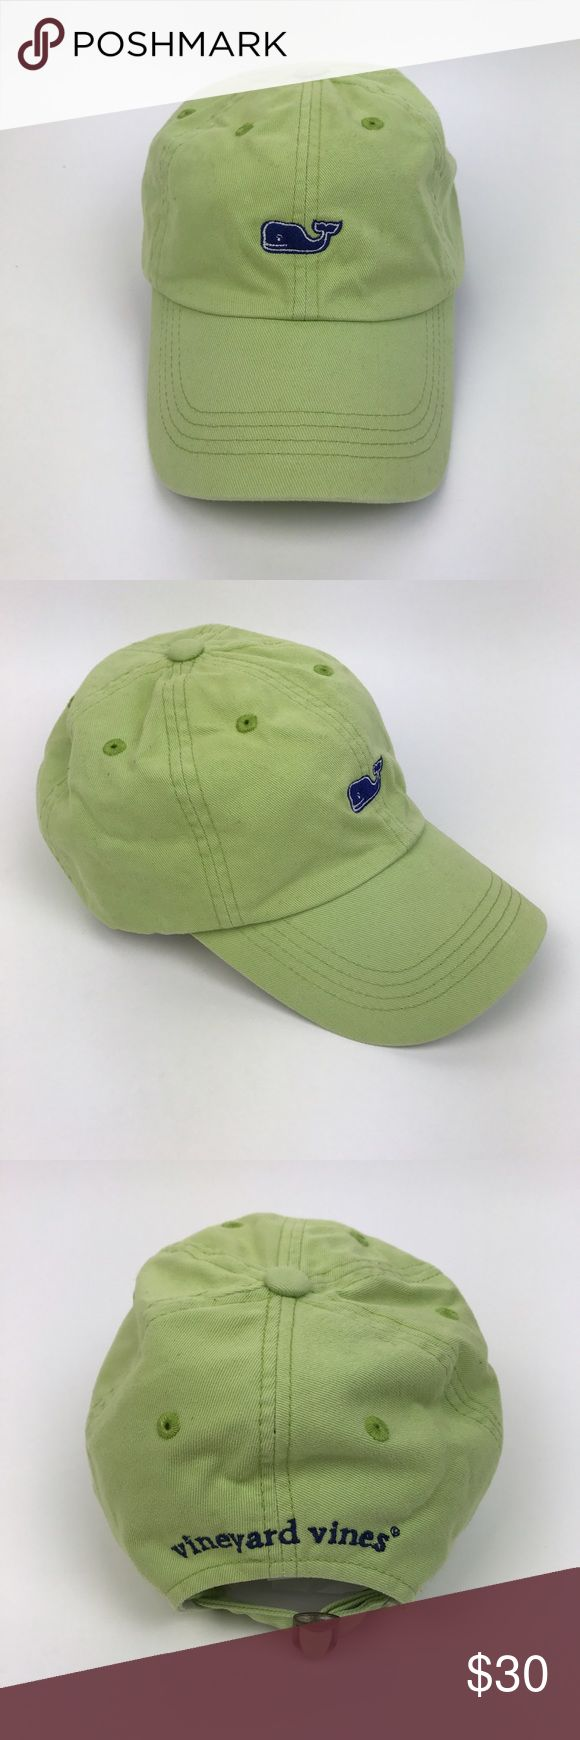 [Vineyard Vines] Whale Logo Baseball Cap Hat Green Classic cotton baseball hat. Whale logo embroidery on front. Spell out logo on back. Adjustable strap back. Curved Brim.  🔹Condition: Very Good pre-owned condition. Some small stains/marks on interior of Brim/under lid. See photos. Vineyard Vines Accessories Hats